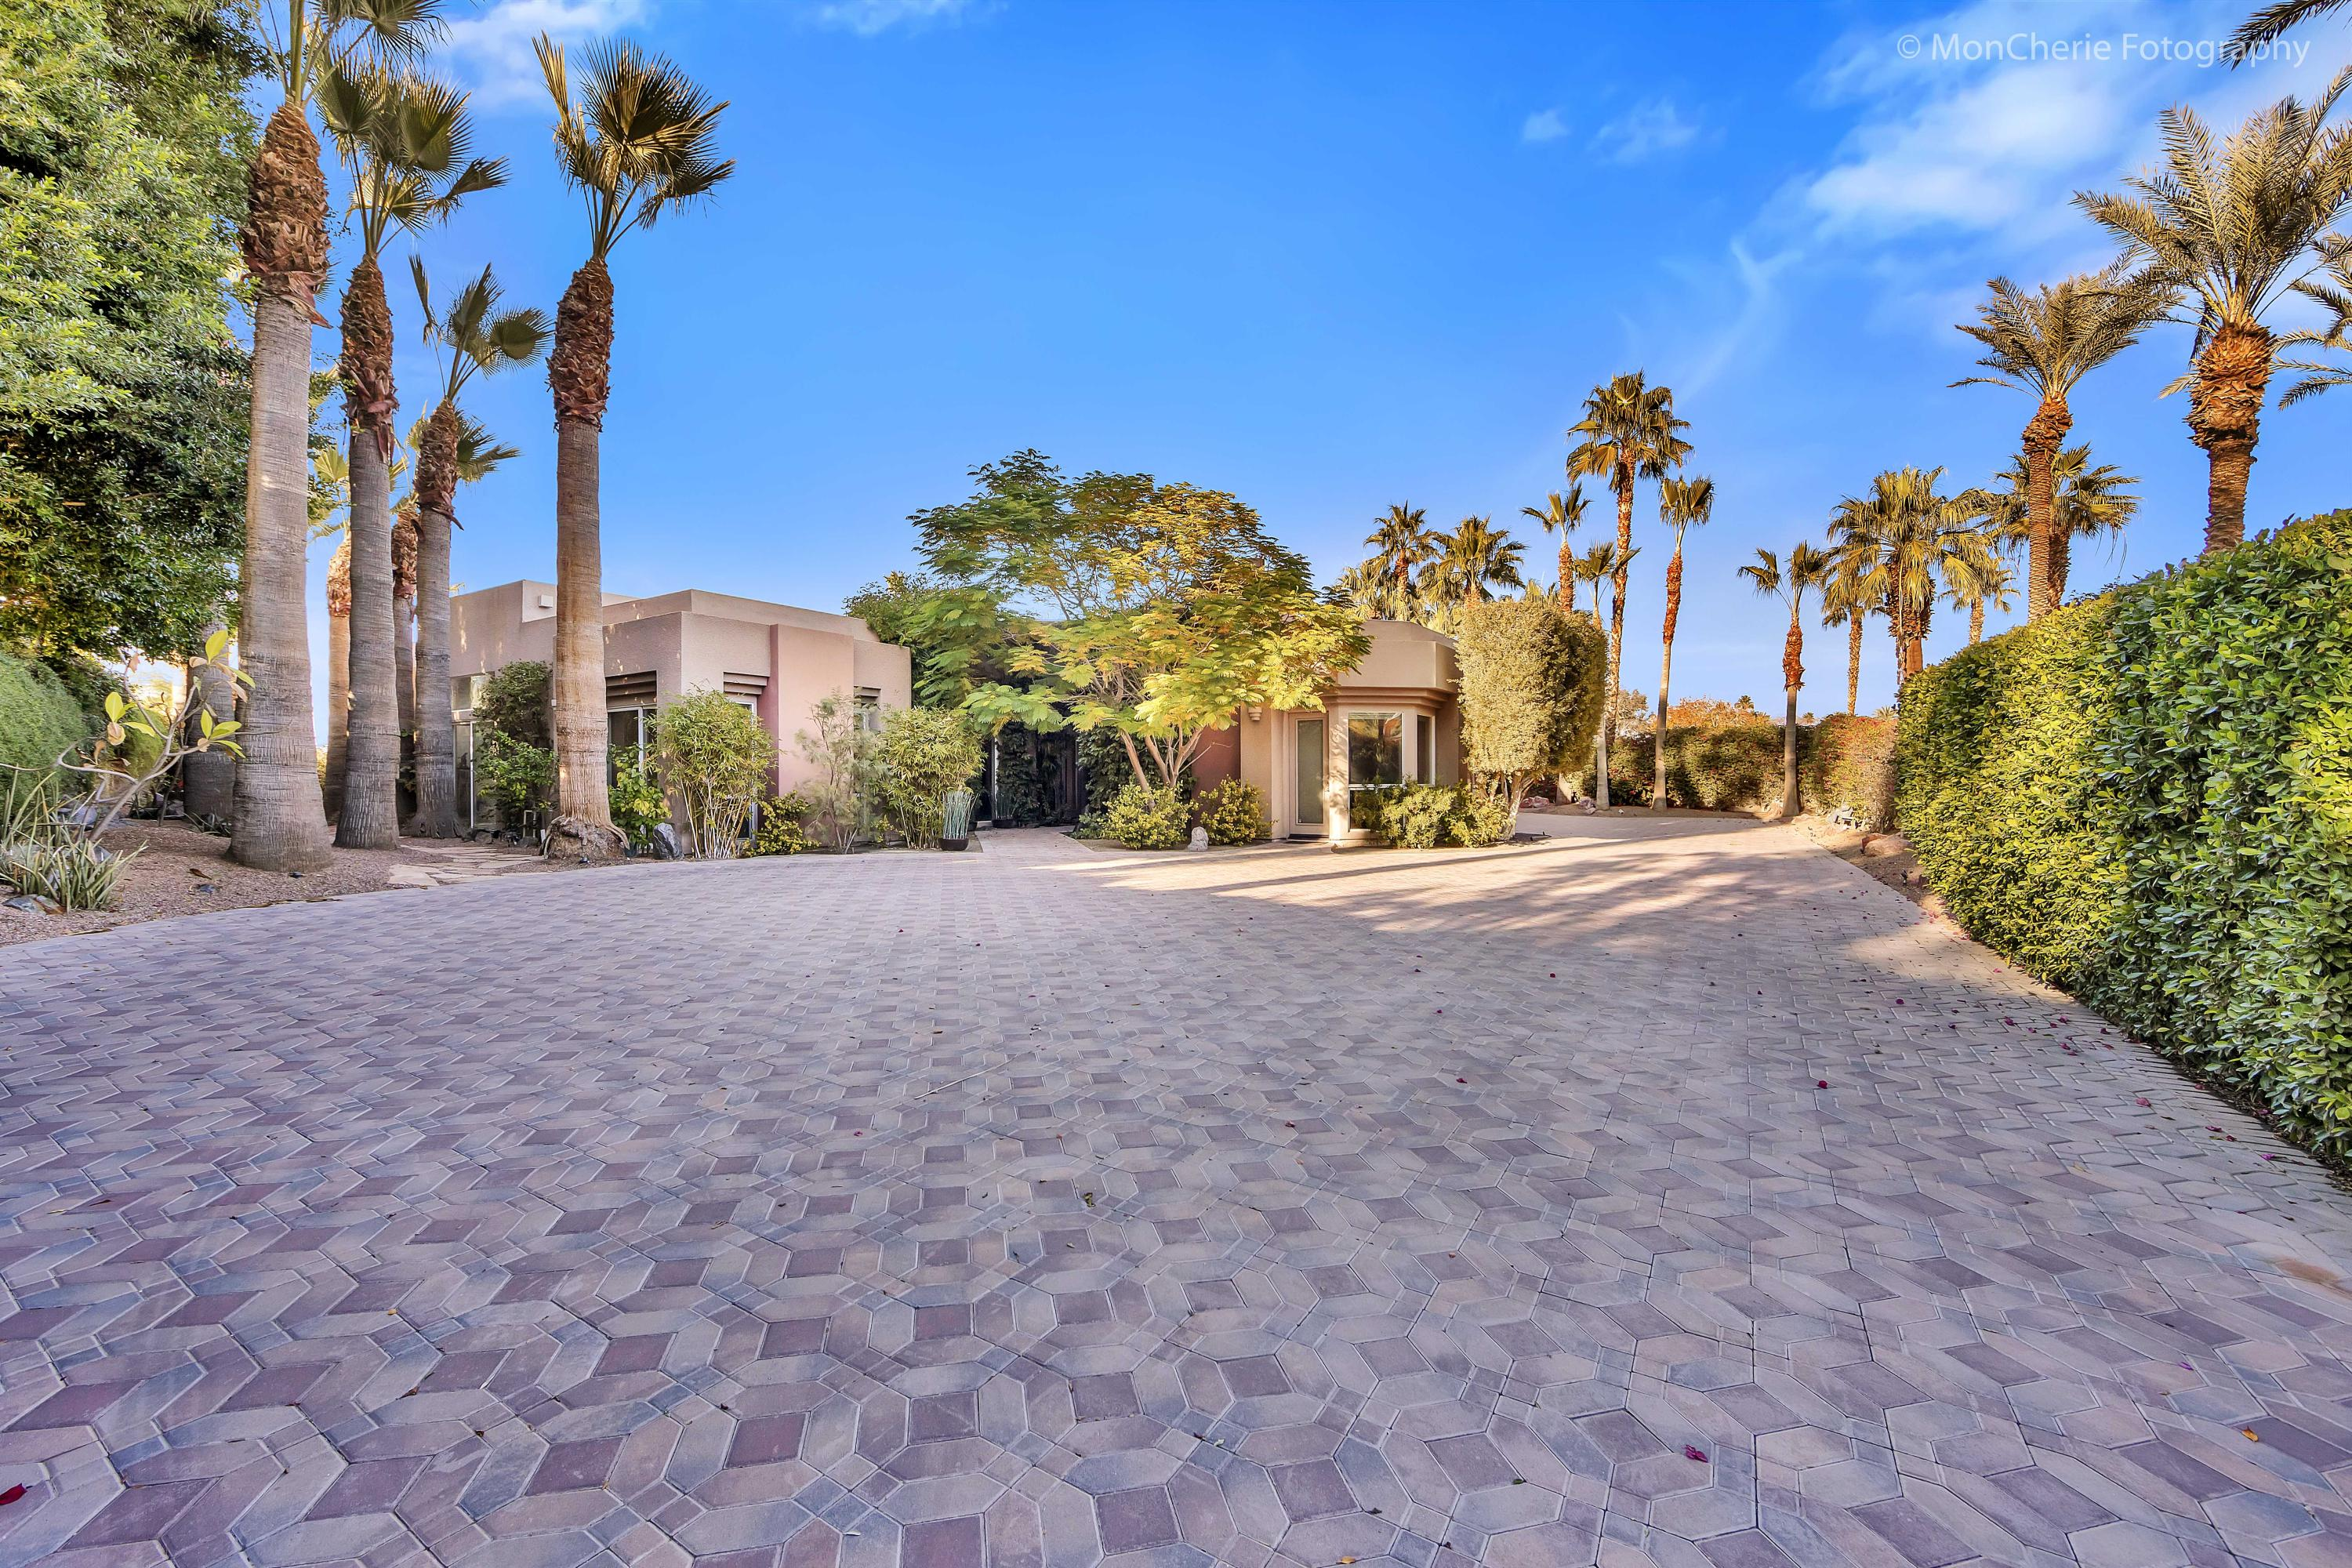 Photo of 1 Evening Star Drive, Rancho Mirage, CA 92270